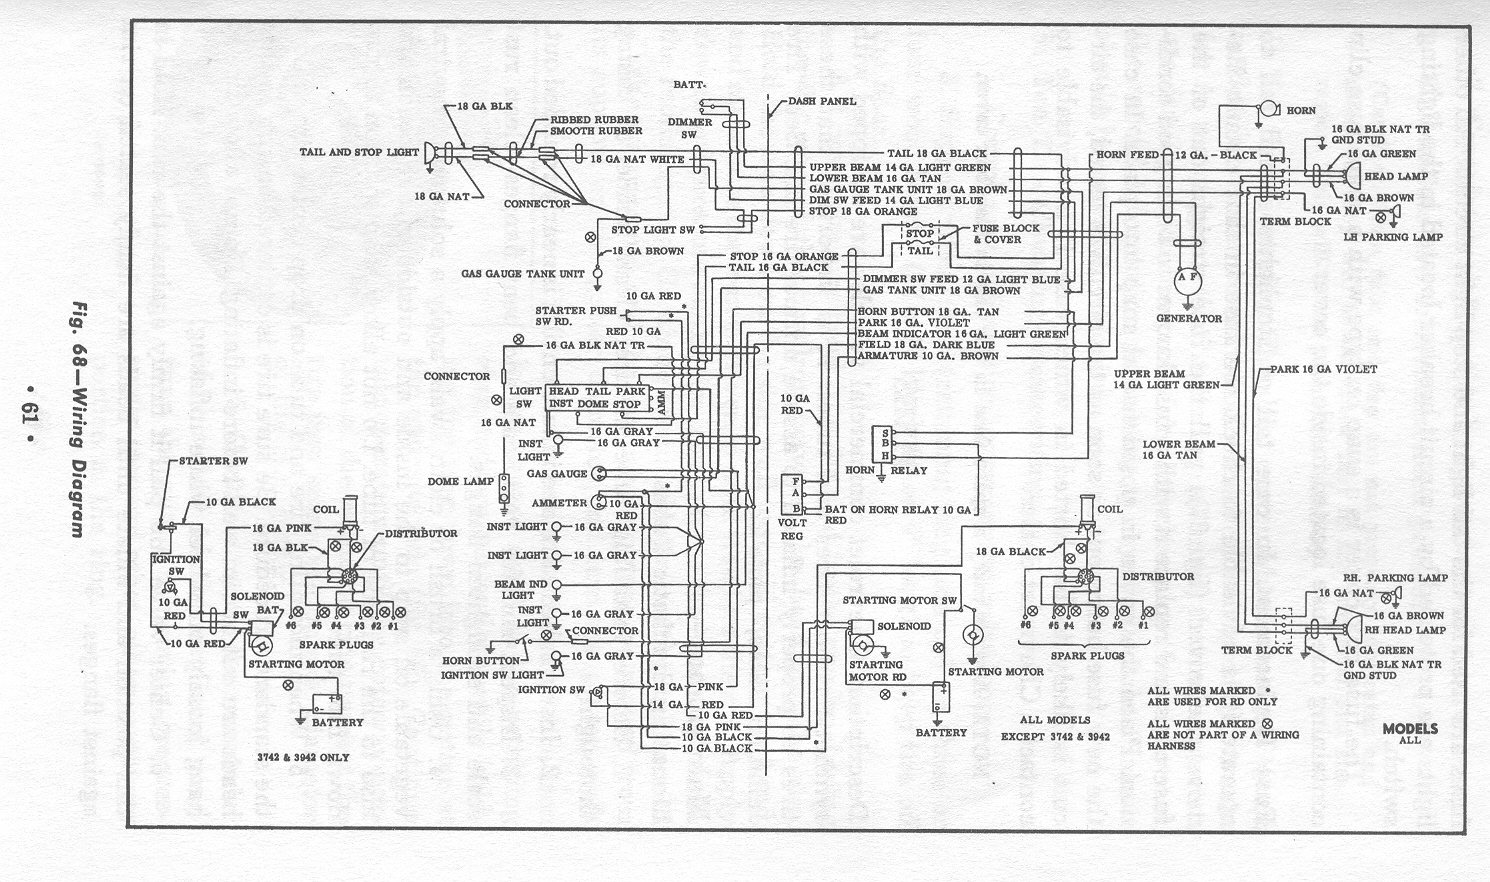 ChevyTruck 1954OperatorsManual_wiring_61 chevy truck 1965 c10 operator's manual index 65 chevy truck wiring diagram at alyssarenee.co